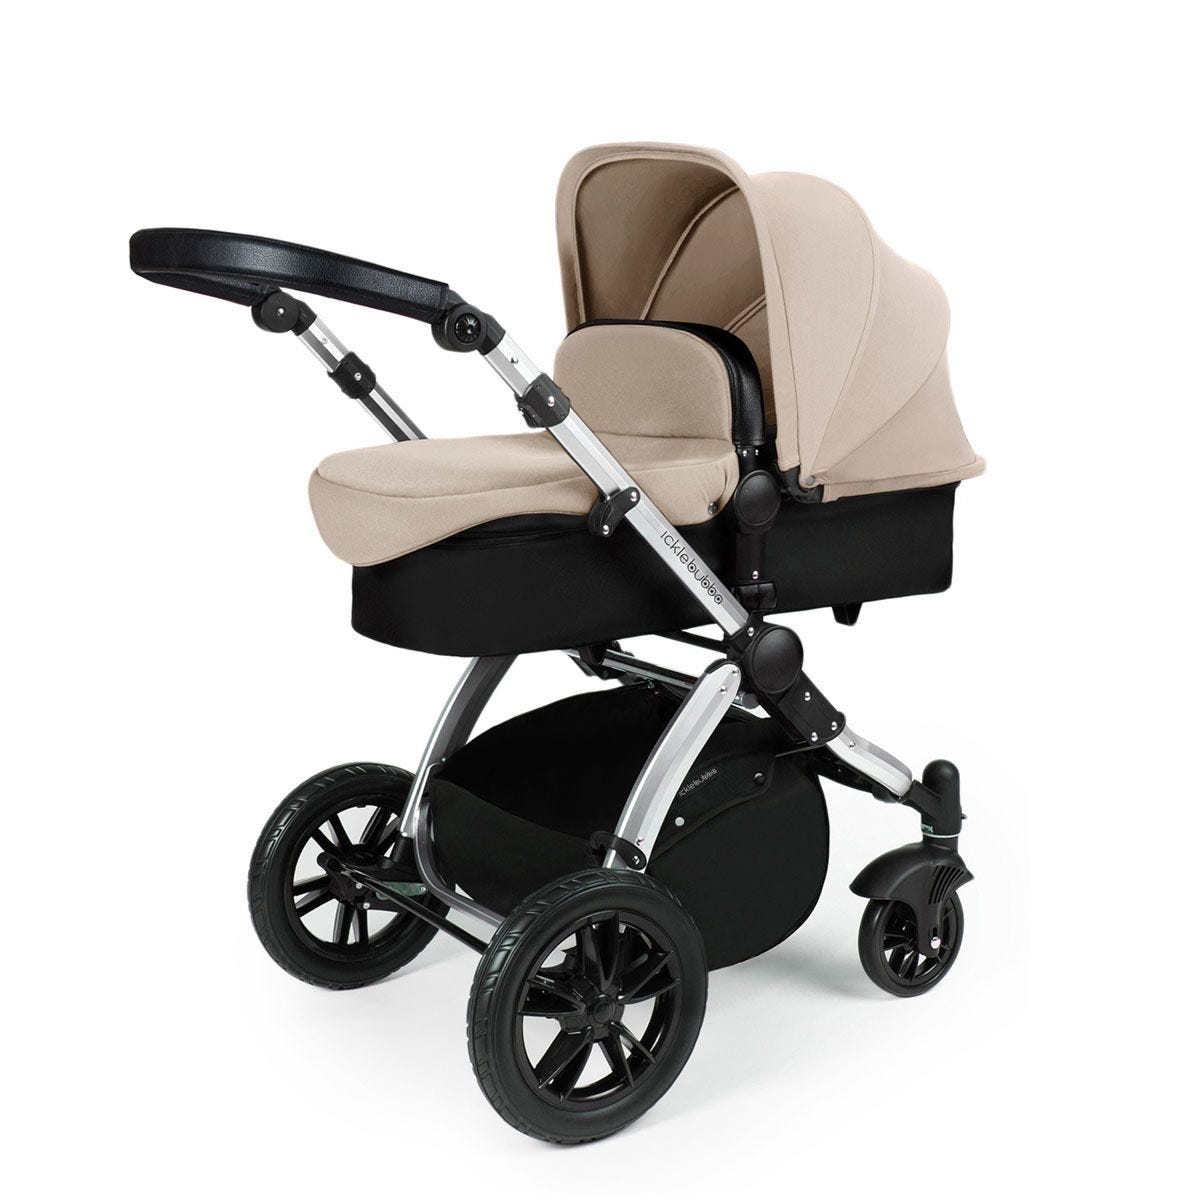 Ickle Bubba Stomp V3 2 in 1 Pushchair - Sand on Silver with Black Handles